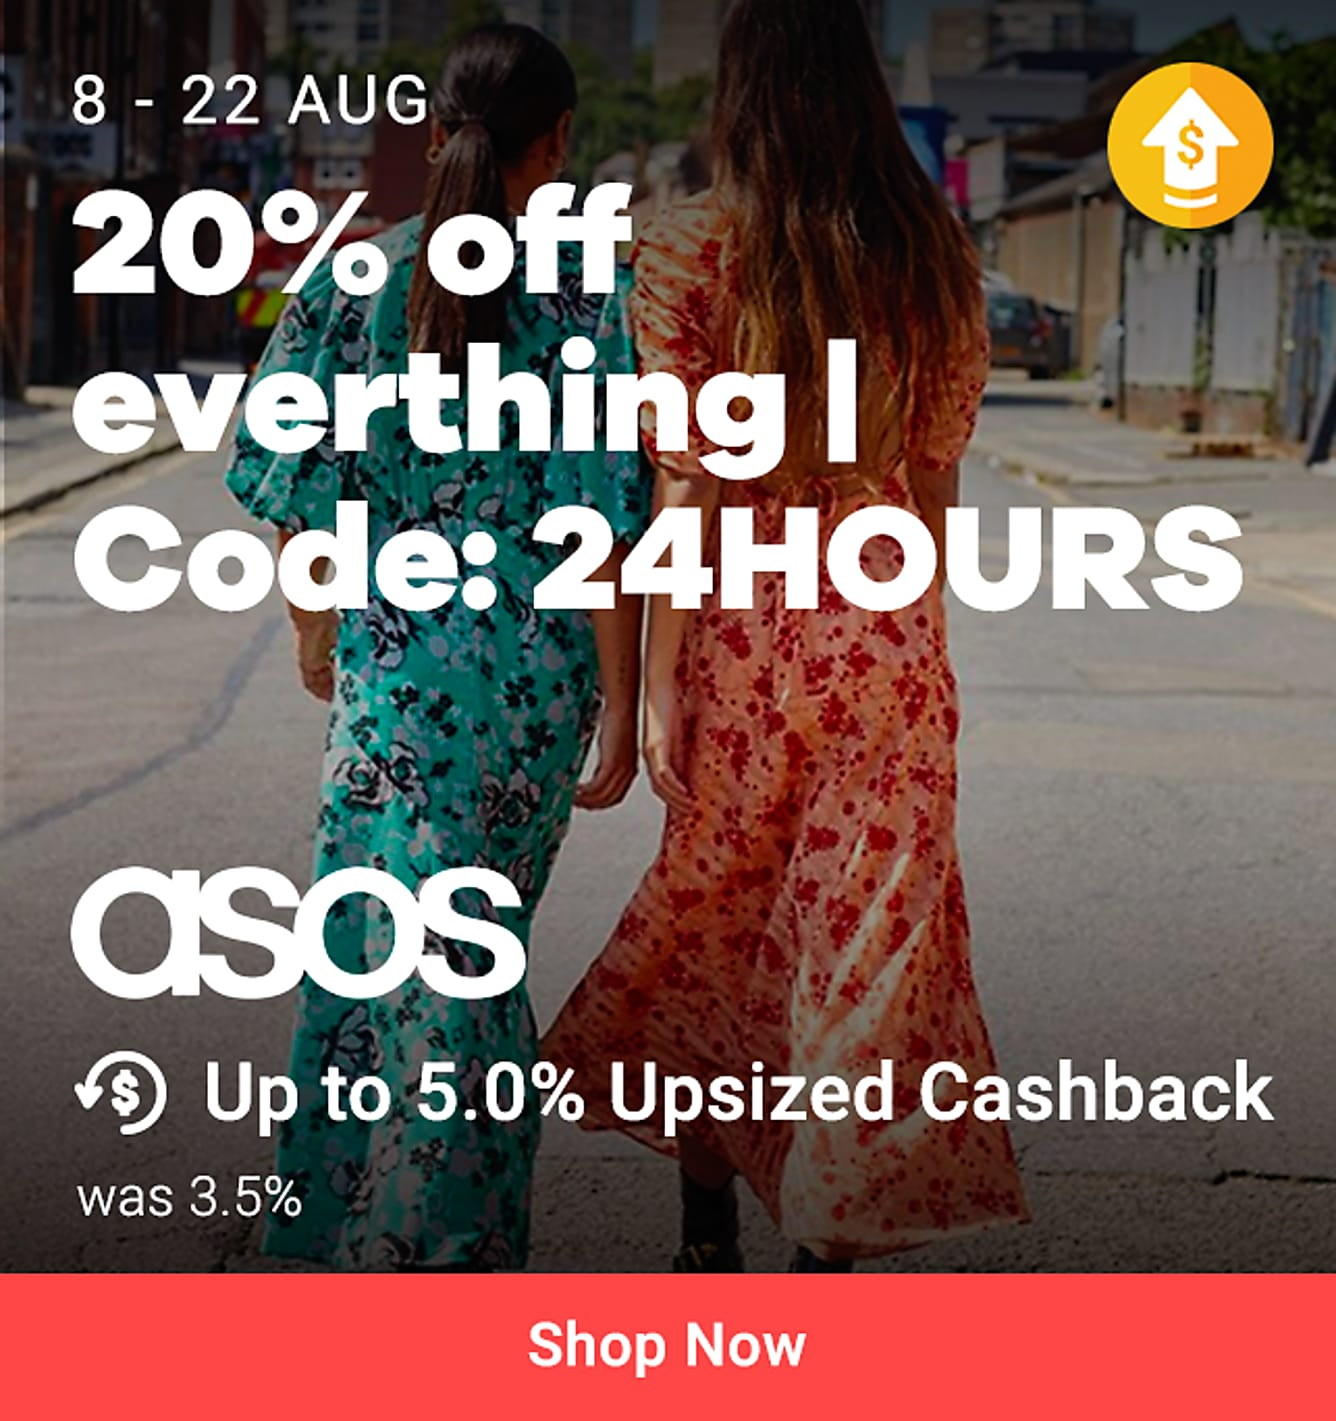 """22 Aug 3pm - 23 Aug 3pm: 20% off everything code """"24HOURS"""" + 5% upsized Cashback (was 3.5%)"""